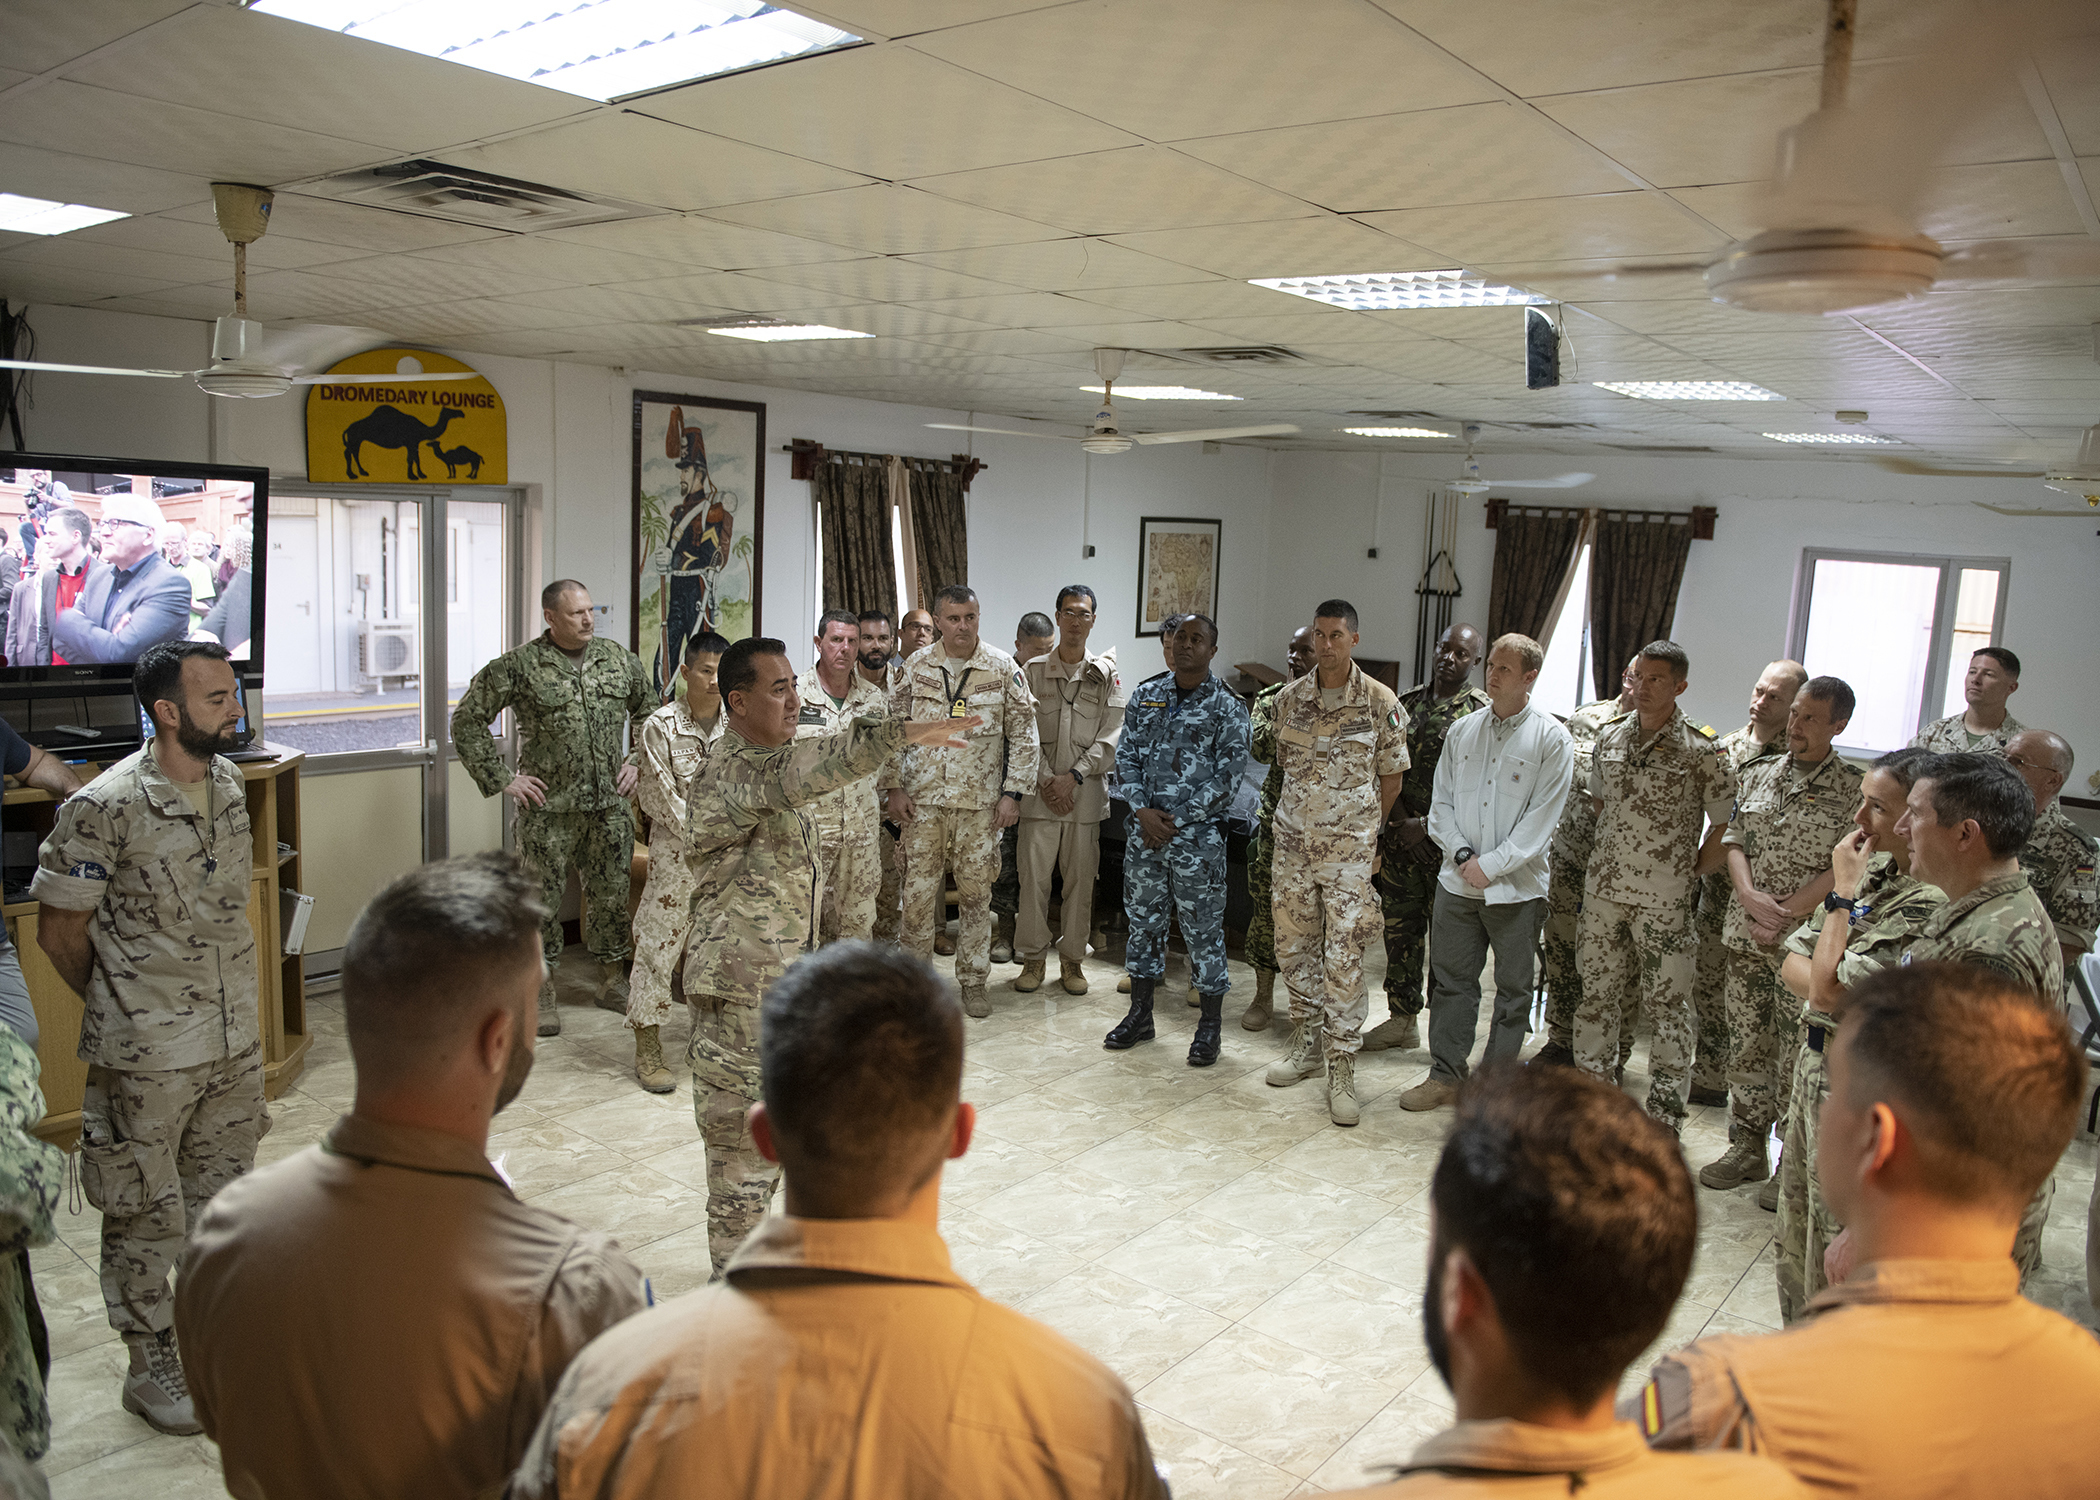 Multinational military partners gather for opening remarks during a cultural exchange event at Camp Lemonnier, Djibouti, Feb. 27, 2019. Multinational military partners affiliated with Camp Lemonnier hold monthly exchange events to strengthen alliances and attract new partners in the combined joint military environment. (U.S. Air Force photo by Tech. Sgt. Shawn Nickel)